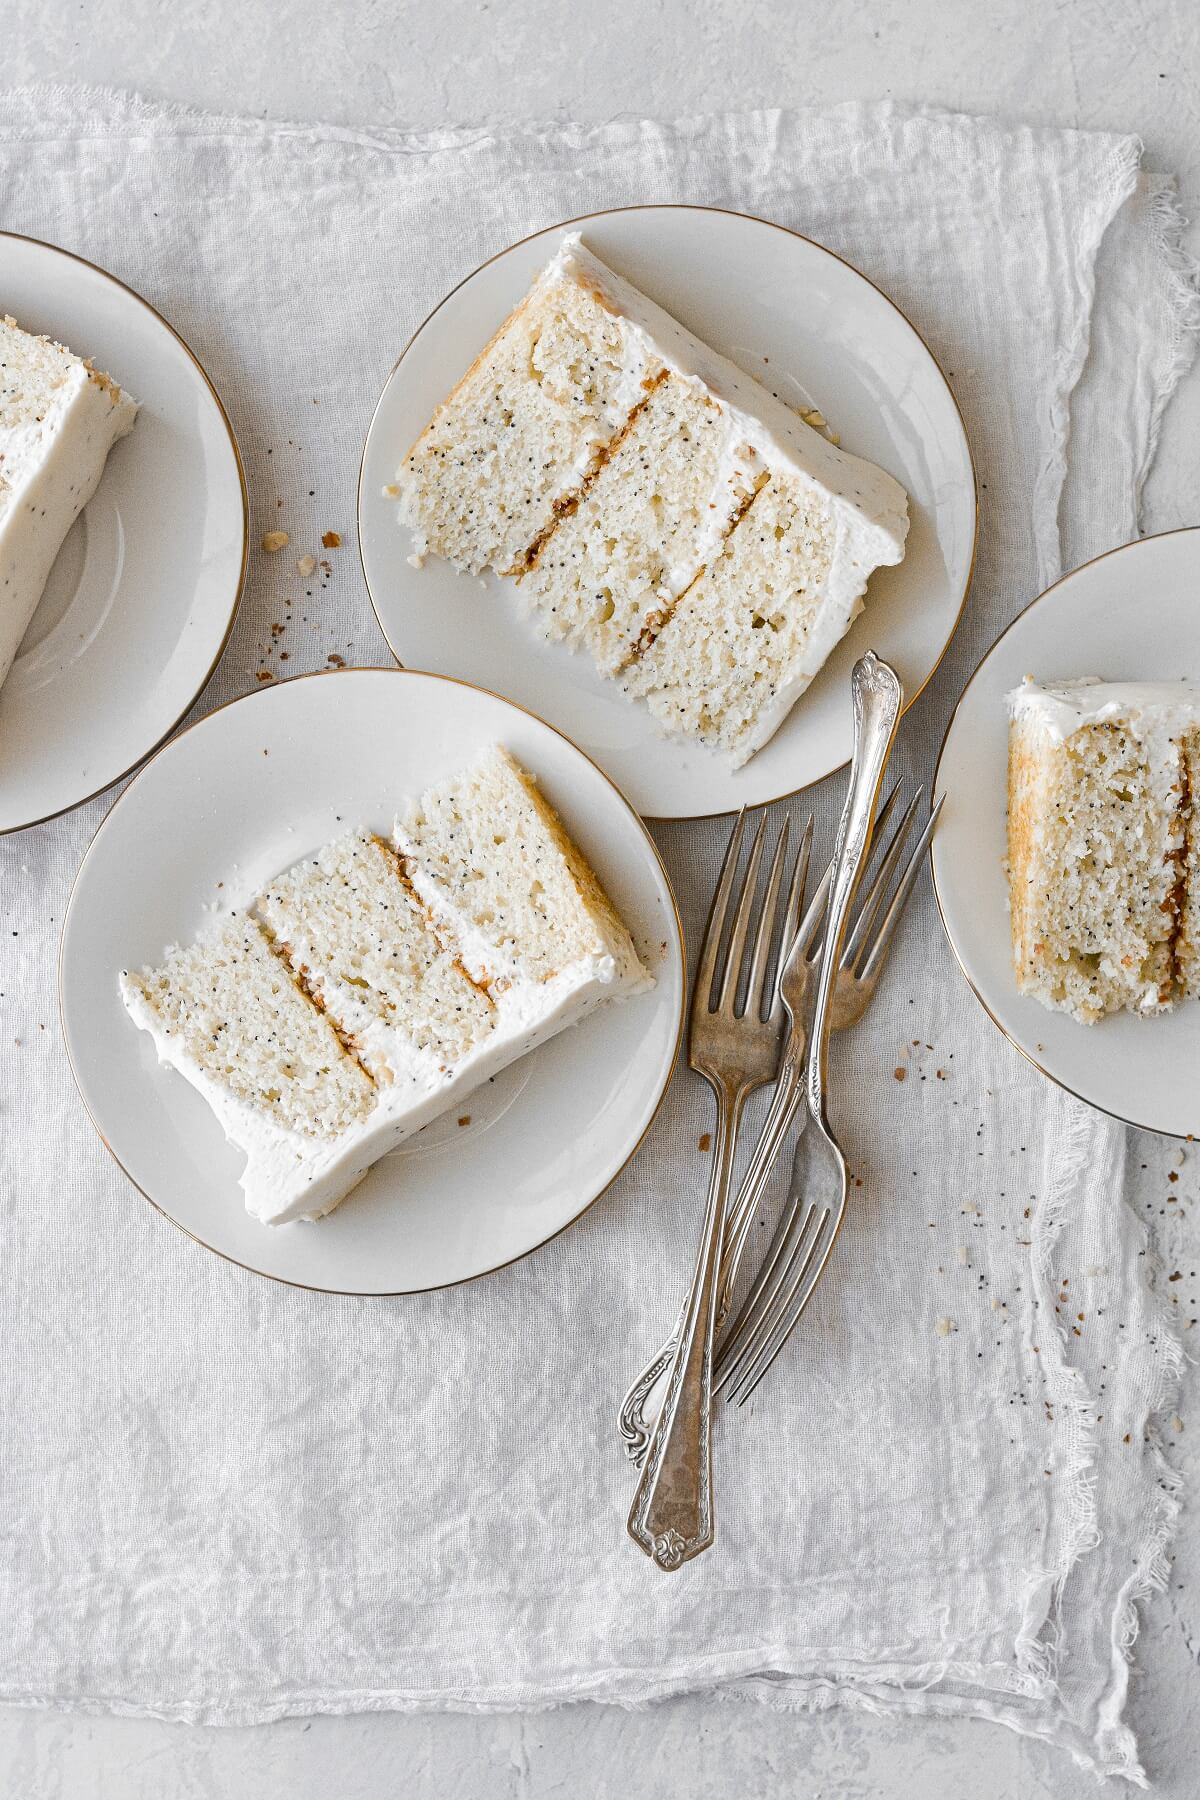 Slices of almond poppyseed cake on white plates.